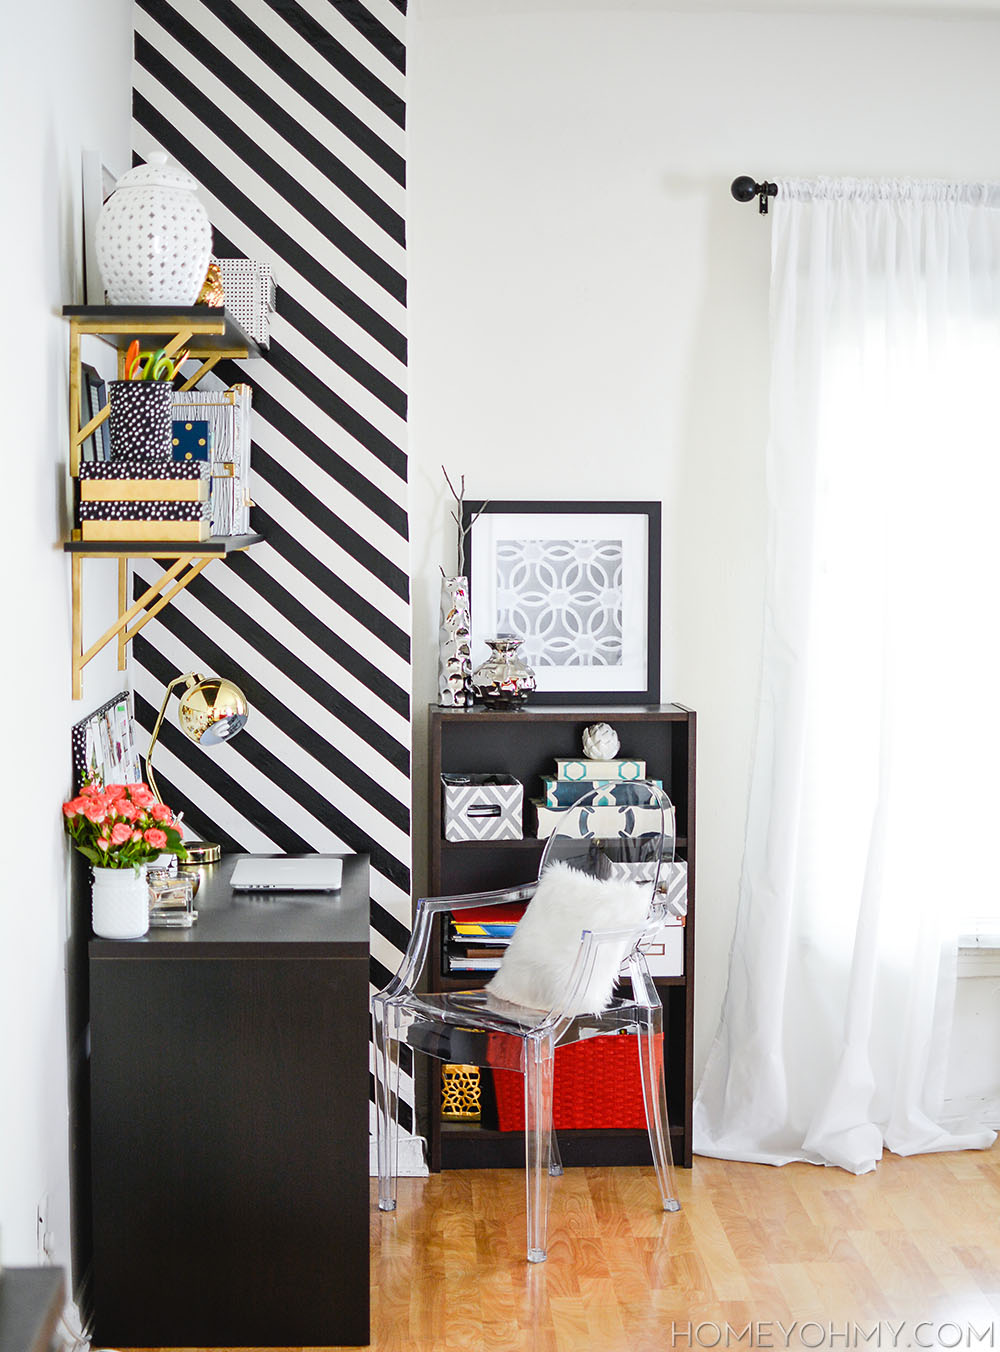 How To Create A Striped Accent Wall Without Paint Homey Oh My